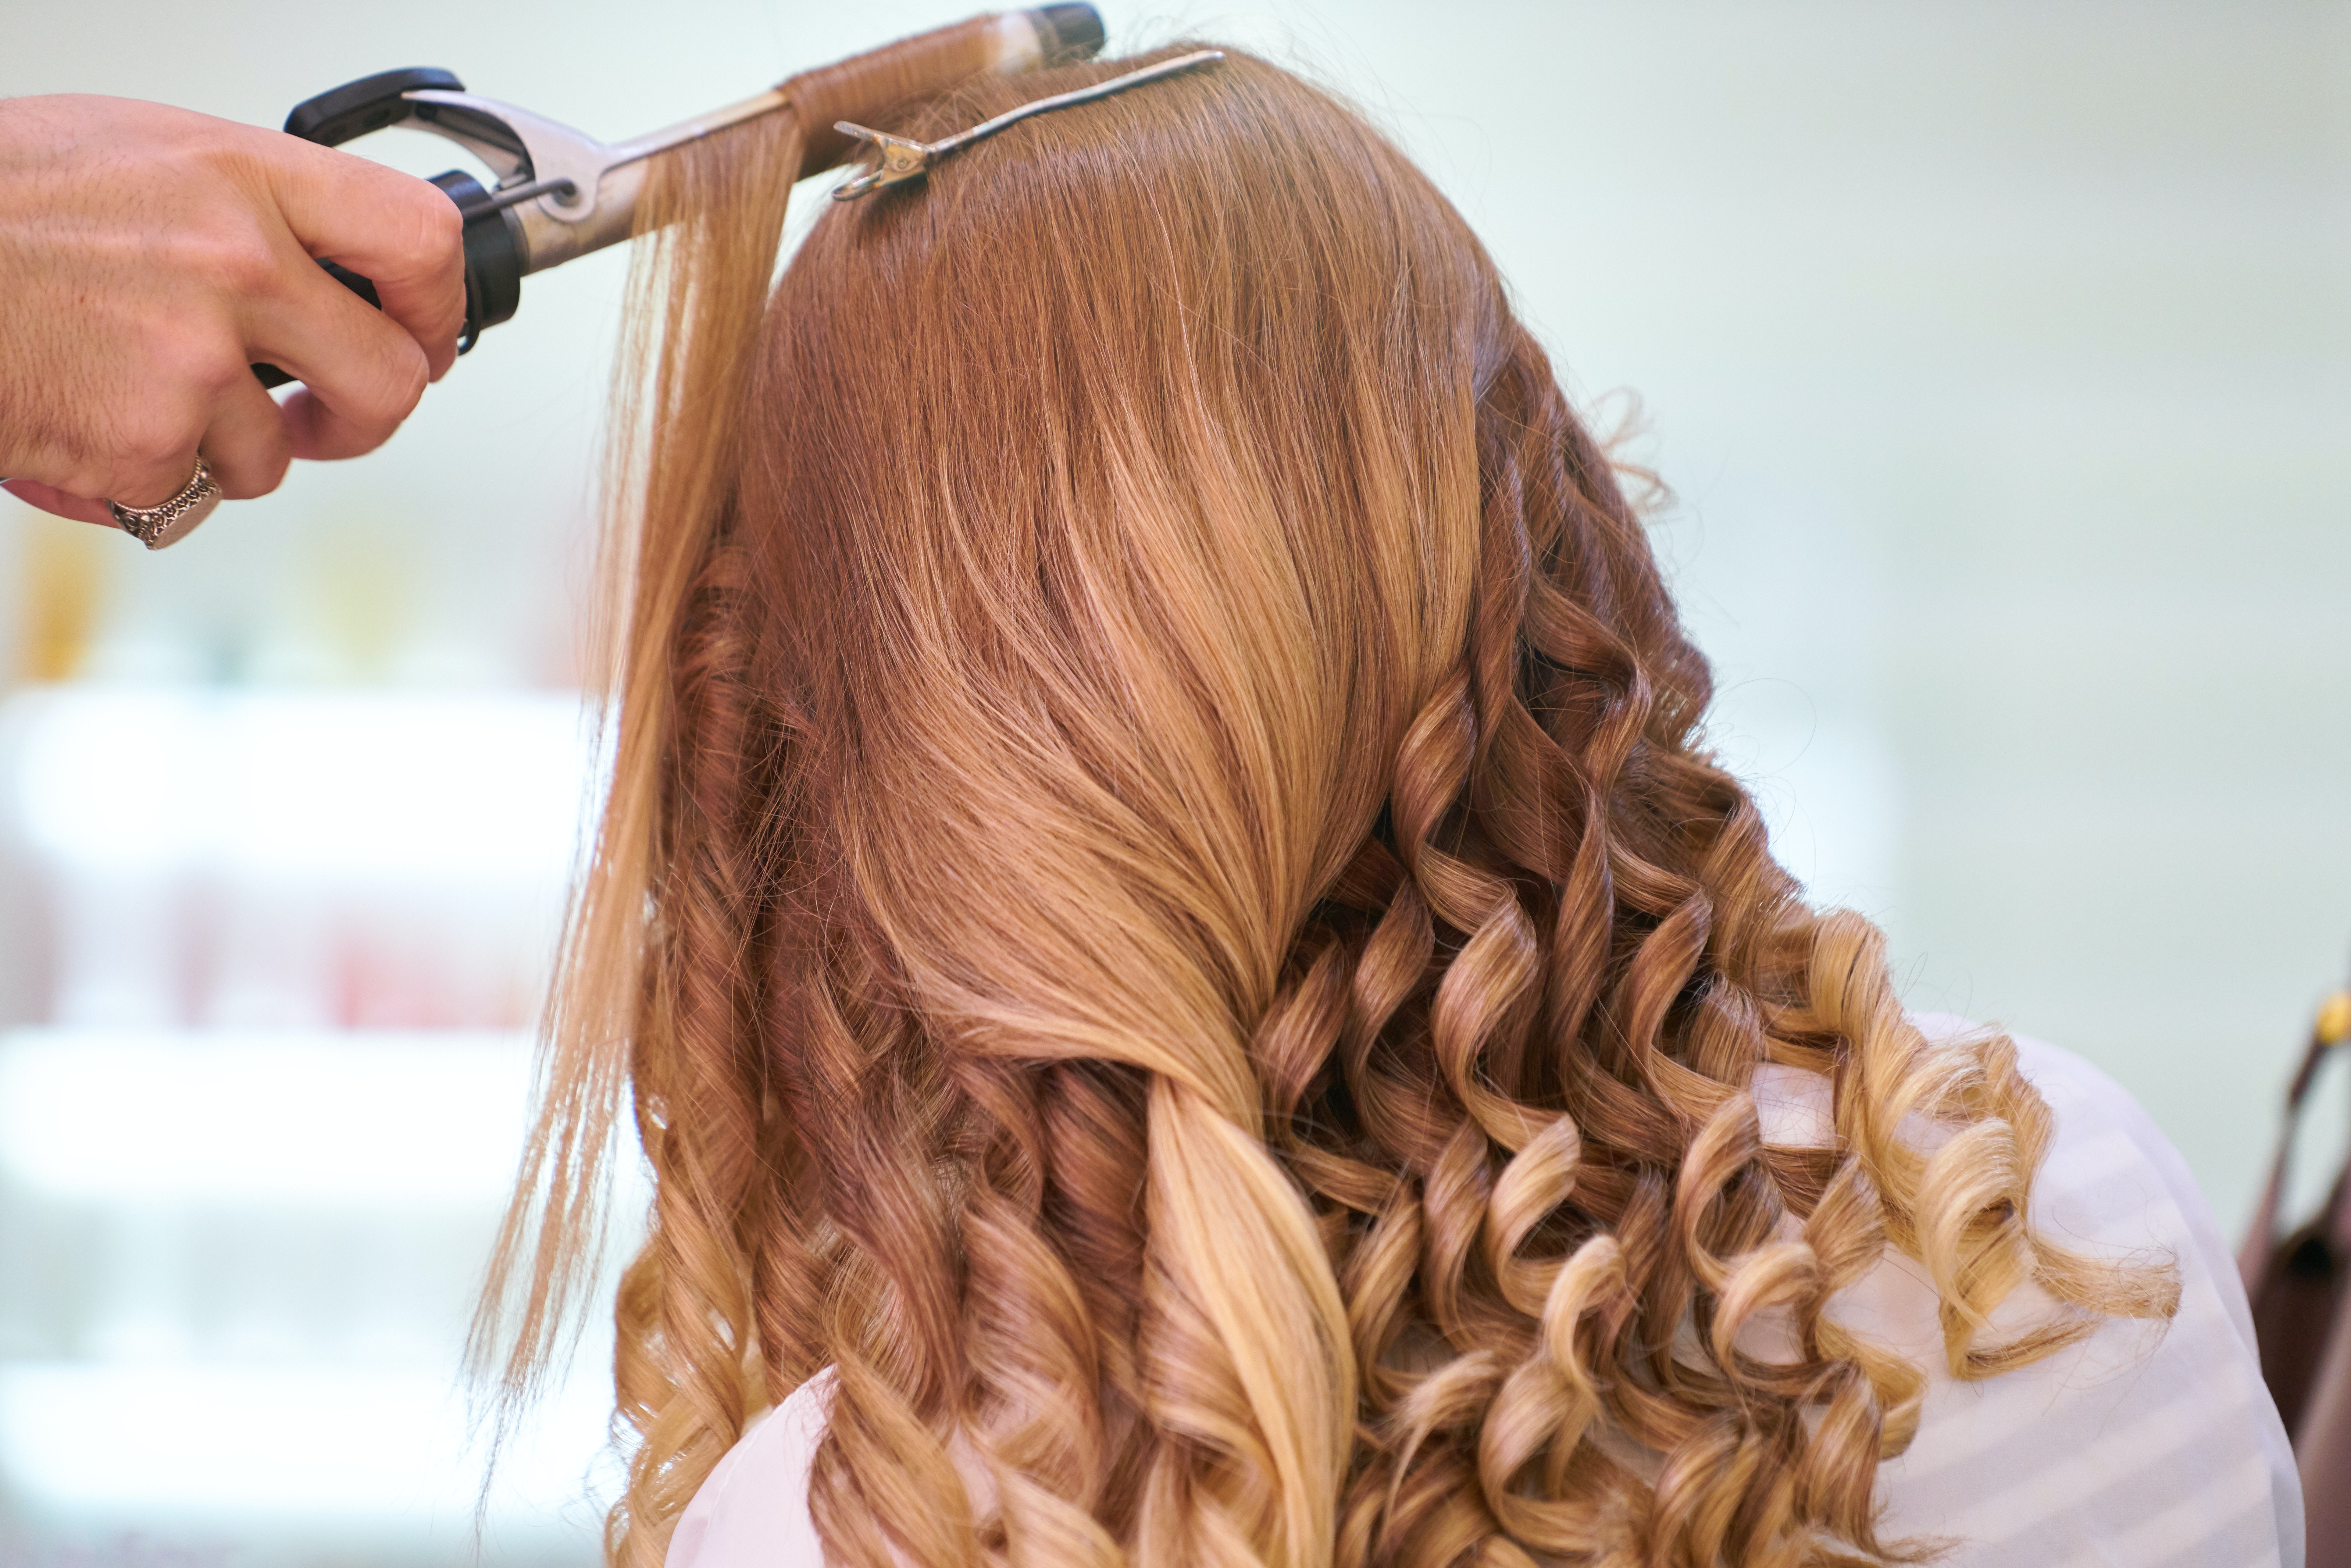 photo-of-person-s-hairstyle-3065209